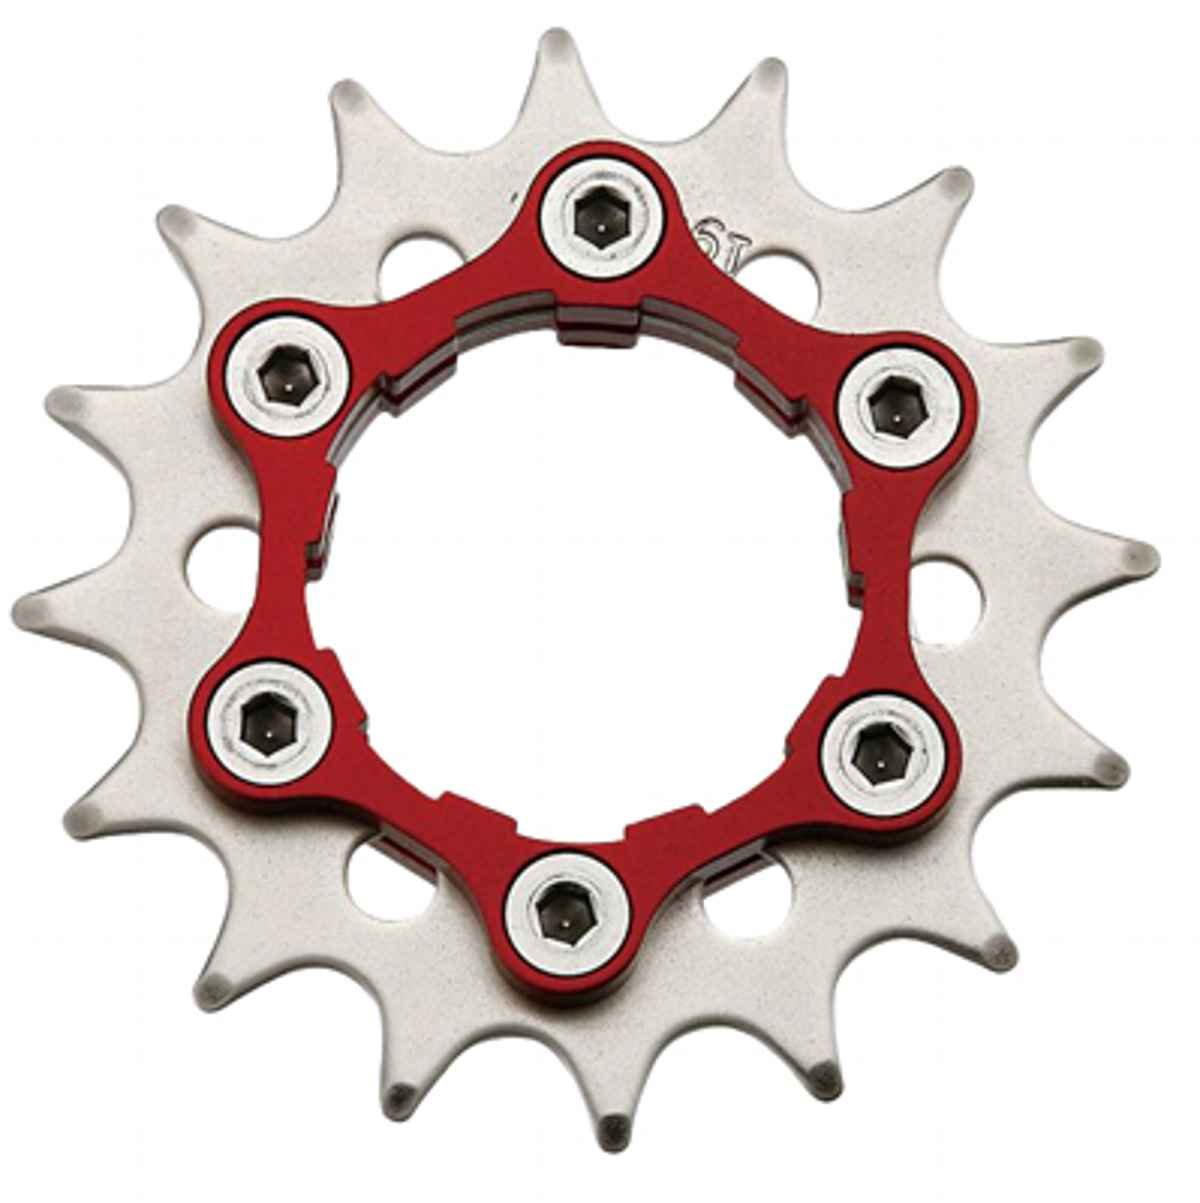 "Origin8 Ultim8 Single Speed Cassette Cog w  6b Disc Mount,16t x 3 32"", schwarz ROT"